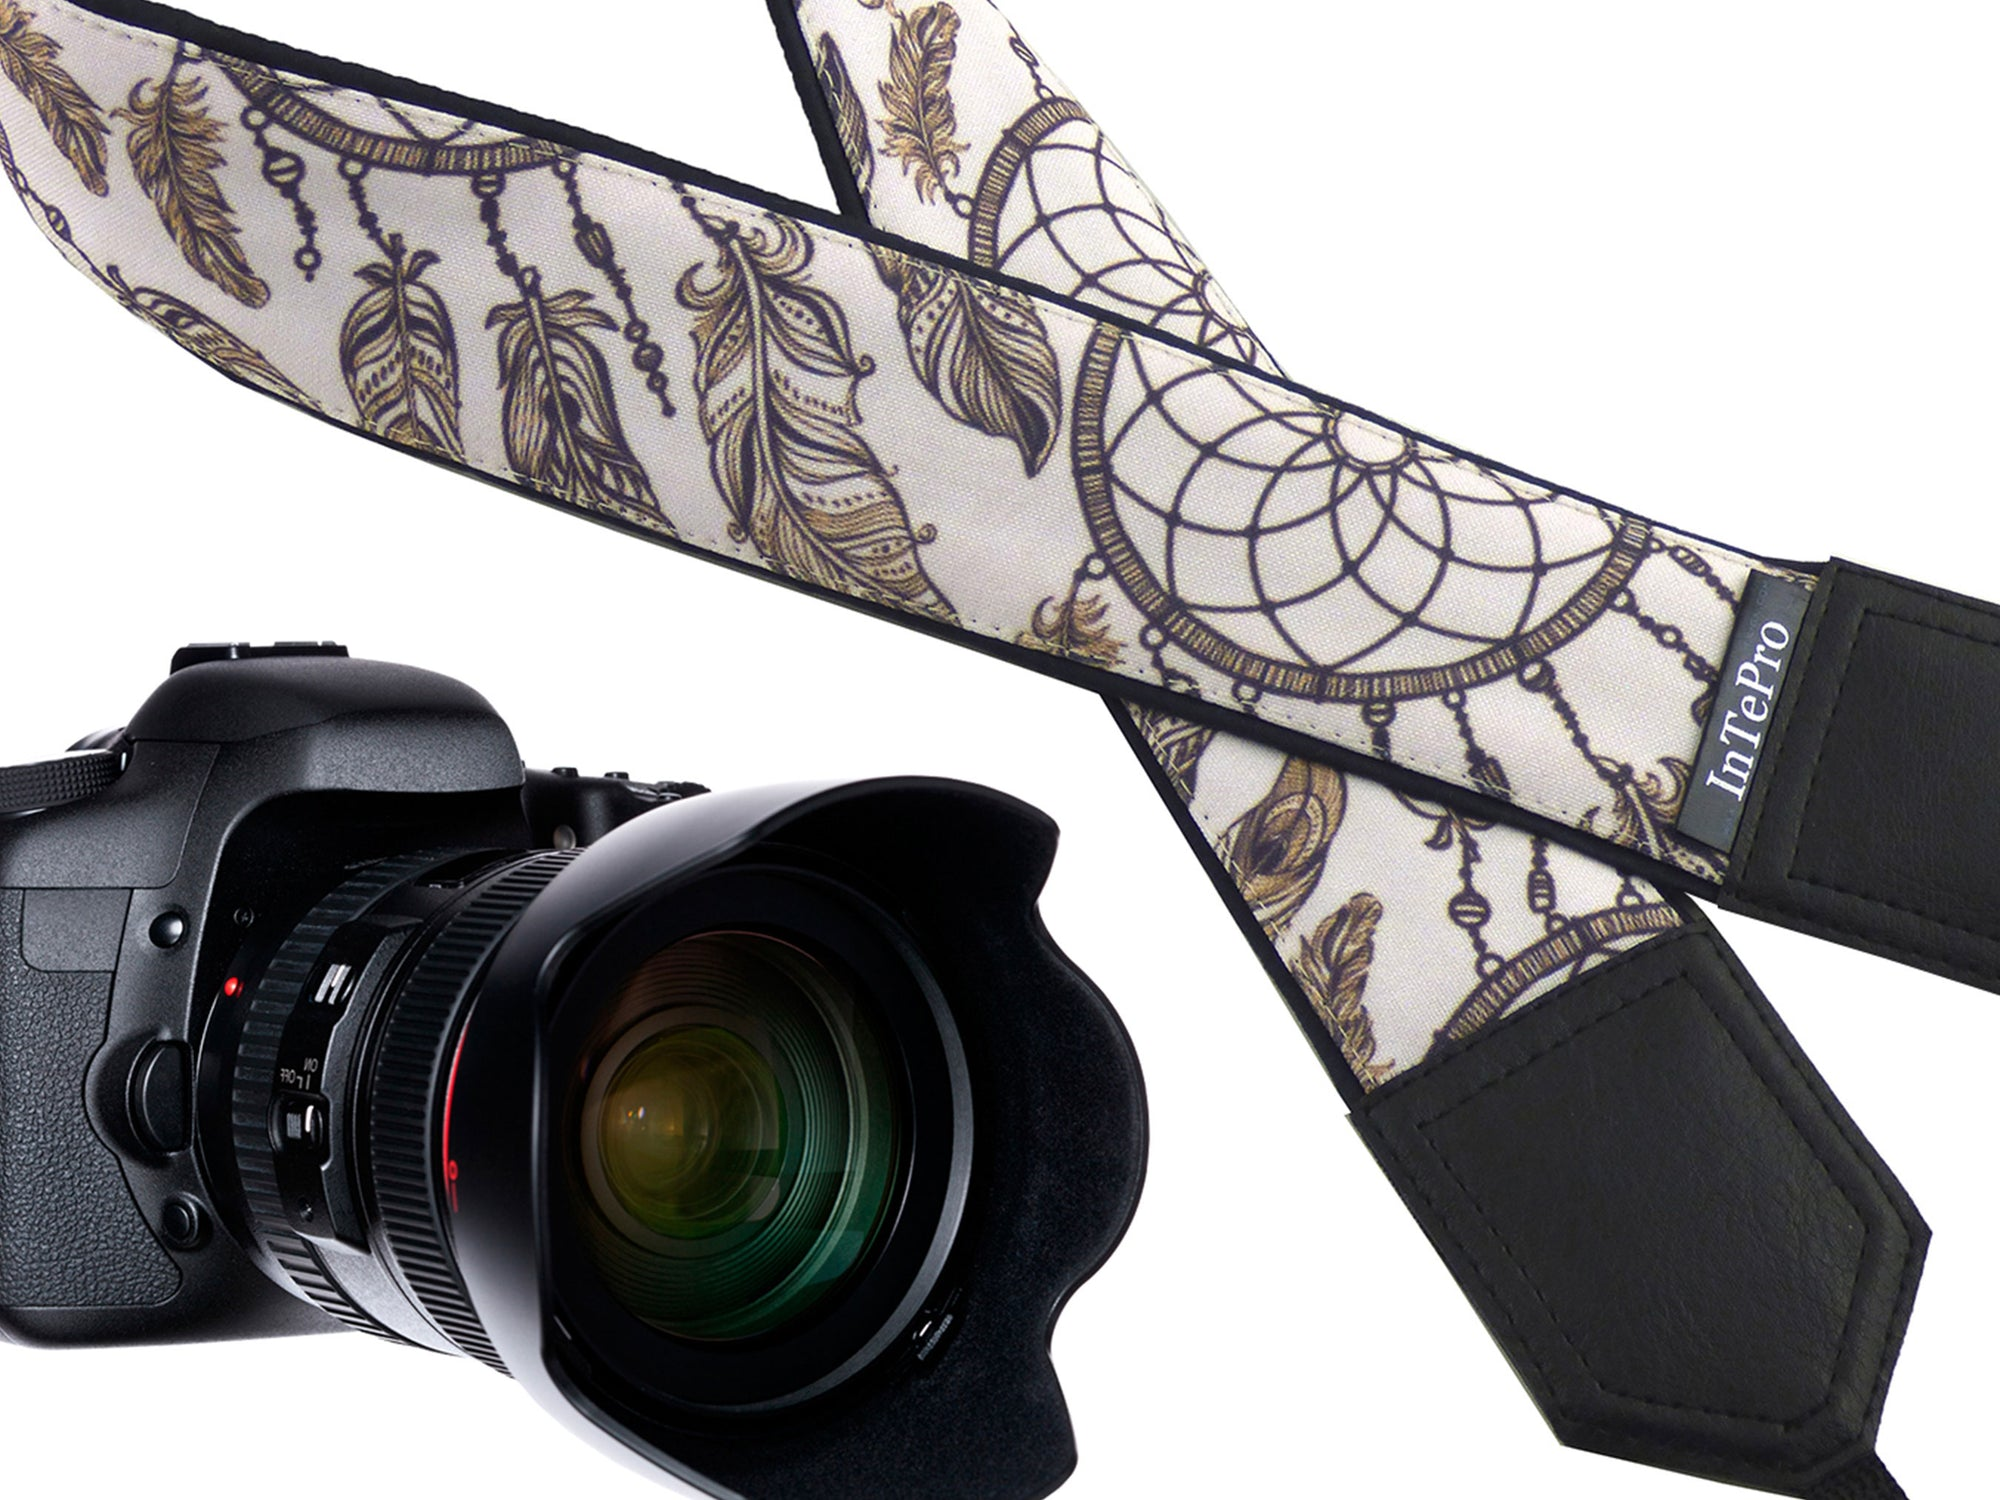 Dreamcatcher camera strap. Best camera accessory by InTePro. Comfortable and secure strap with many designs. Unique gift idea.